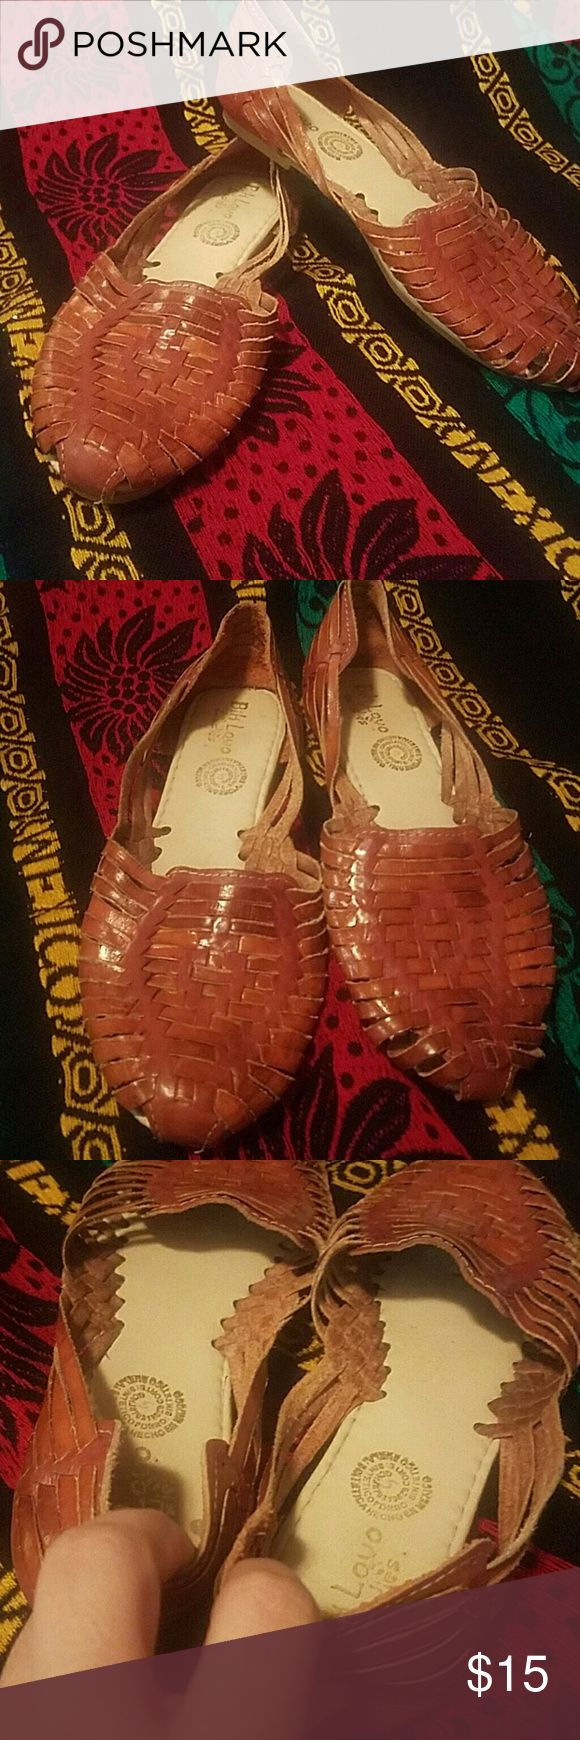 Sandals From Mexico I'm a Size 8-8.5 I purchased these but hardly wore them they were probably used less than a handful of times size 5 in Mexico which is a size 8 in US Bik Lovo  Ladies Shoes Flats & Loafers